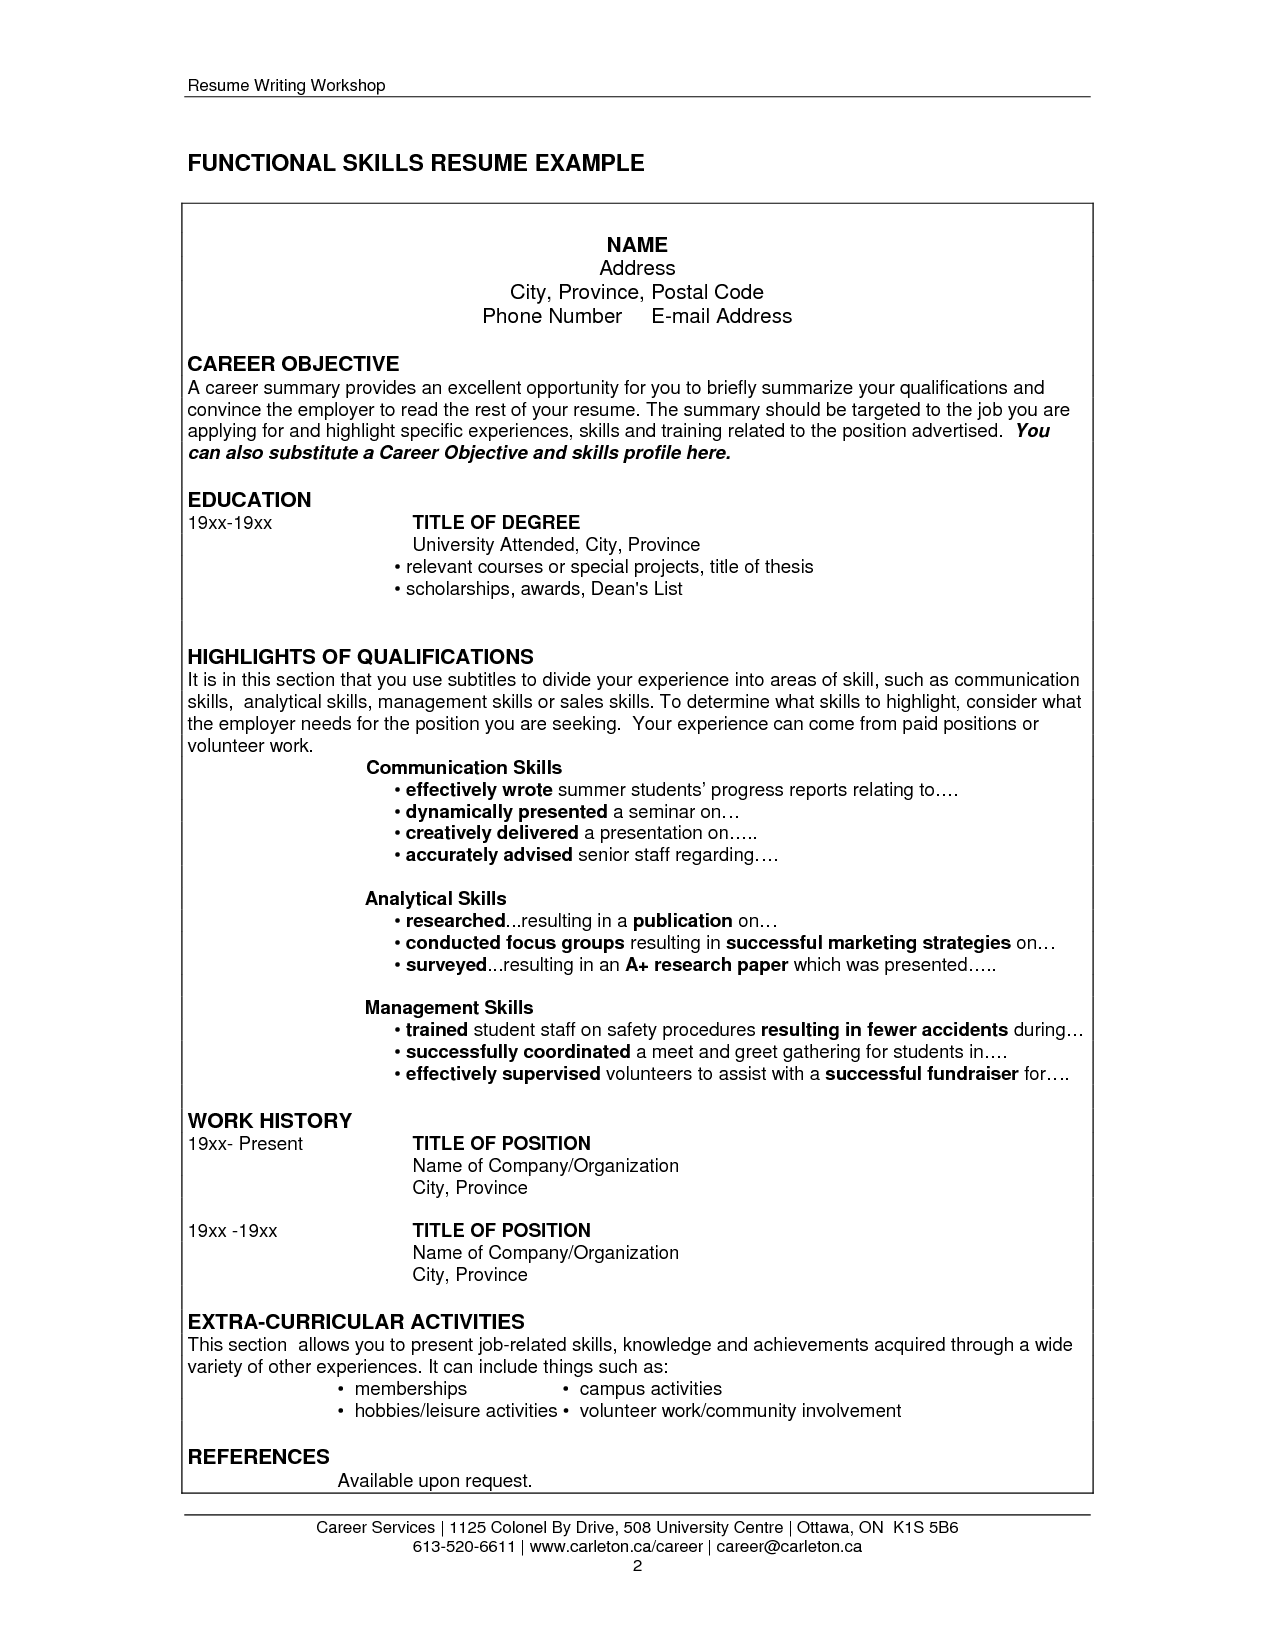 Resume For Hospital Job Image Result For Skills Resume Format  Business  Pinterest